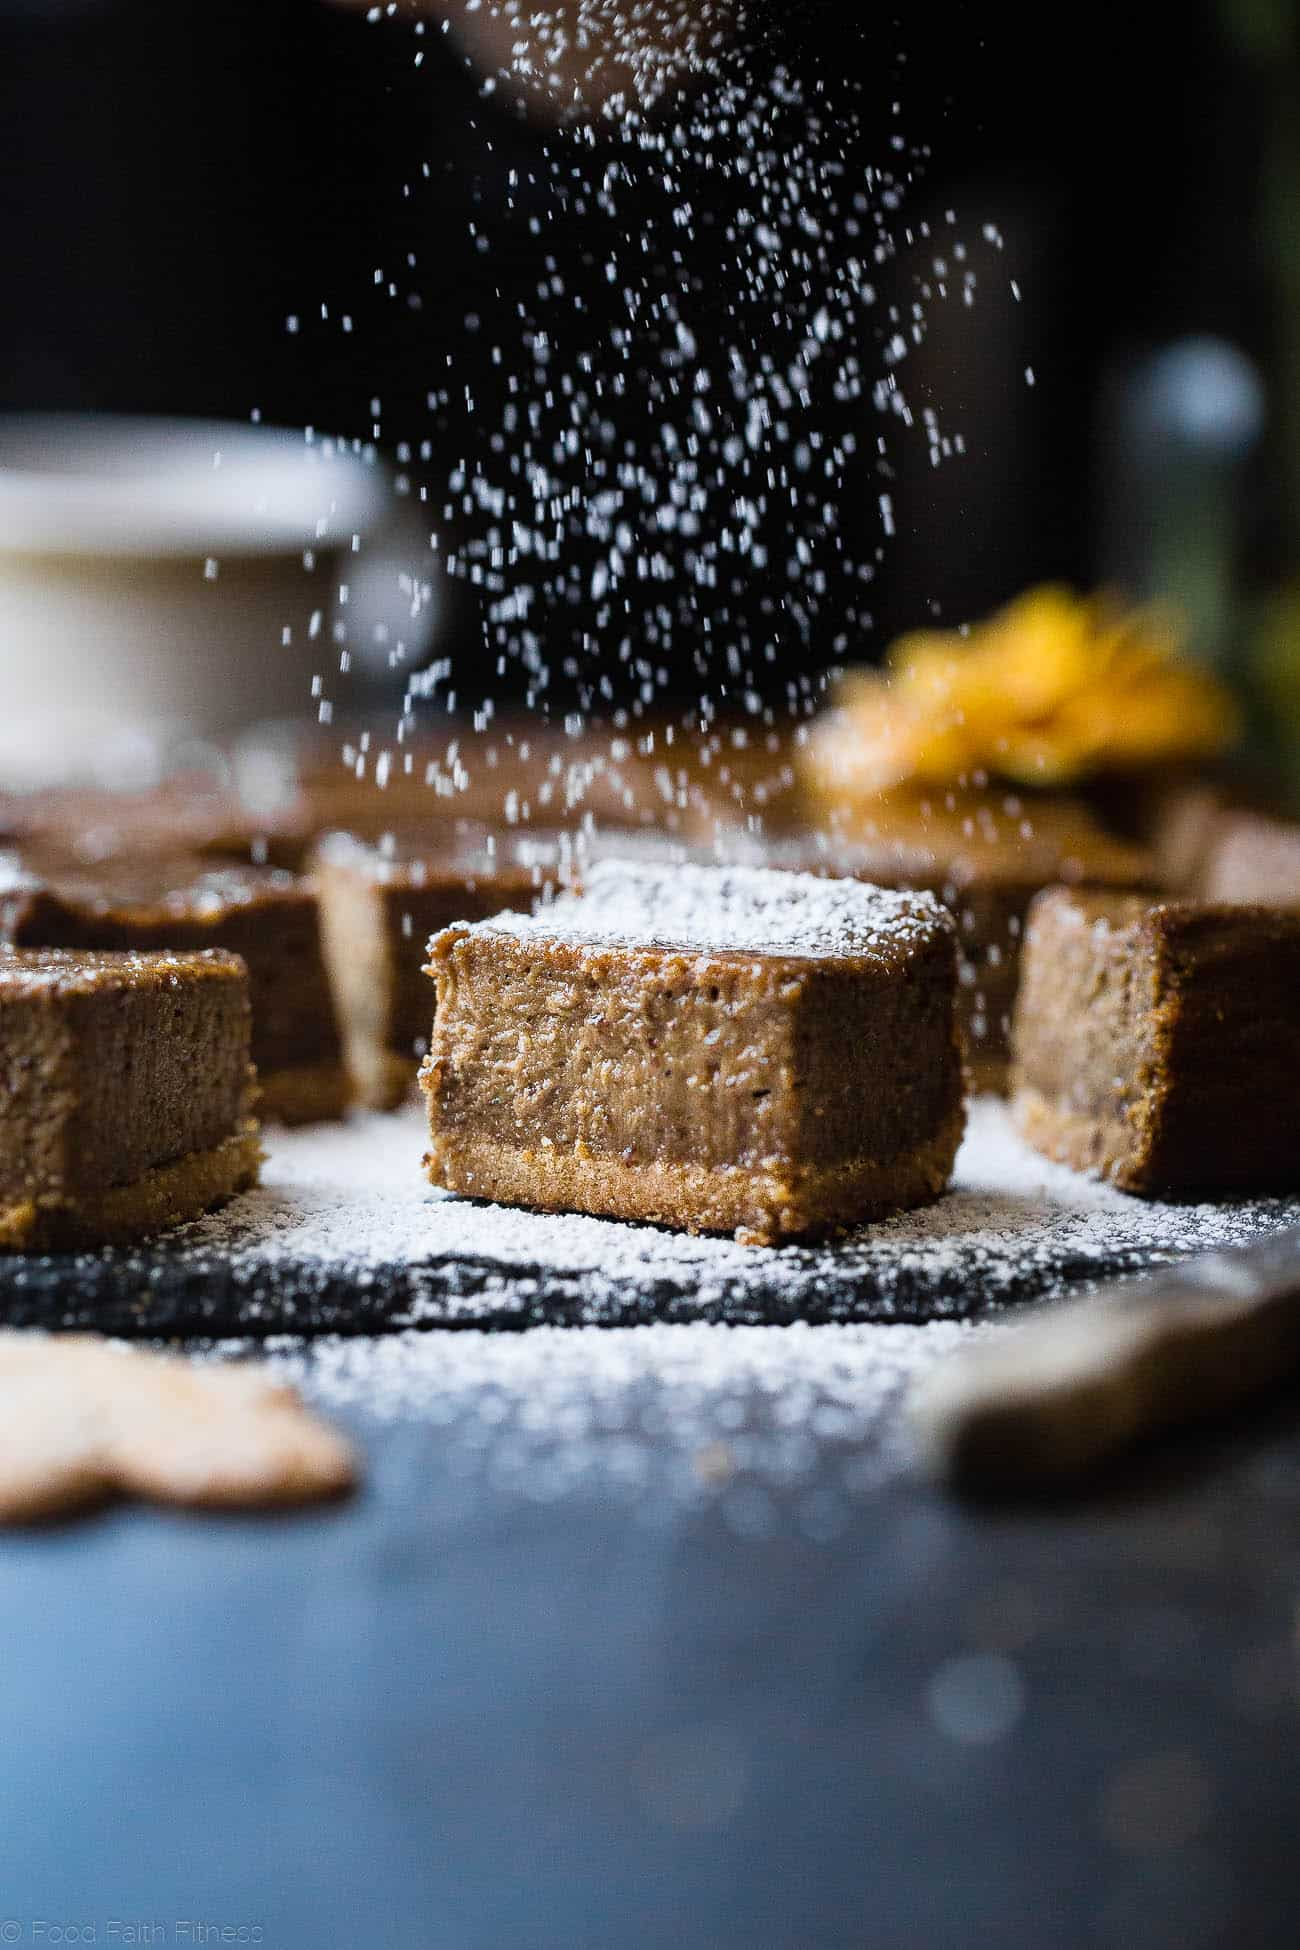 Gingerbread Dairy Free Paleo Cheesecake Bars - These little bites of gingerbread blissare SO creamy and spicy-sweet! A paleo friendly, healthy and gluten free dessert for the holidays that you will never believe is dairy and egg free! | Foodfaithfitness.com | @FoodFaithFit